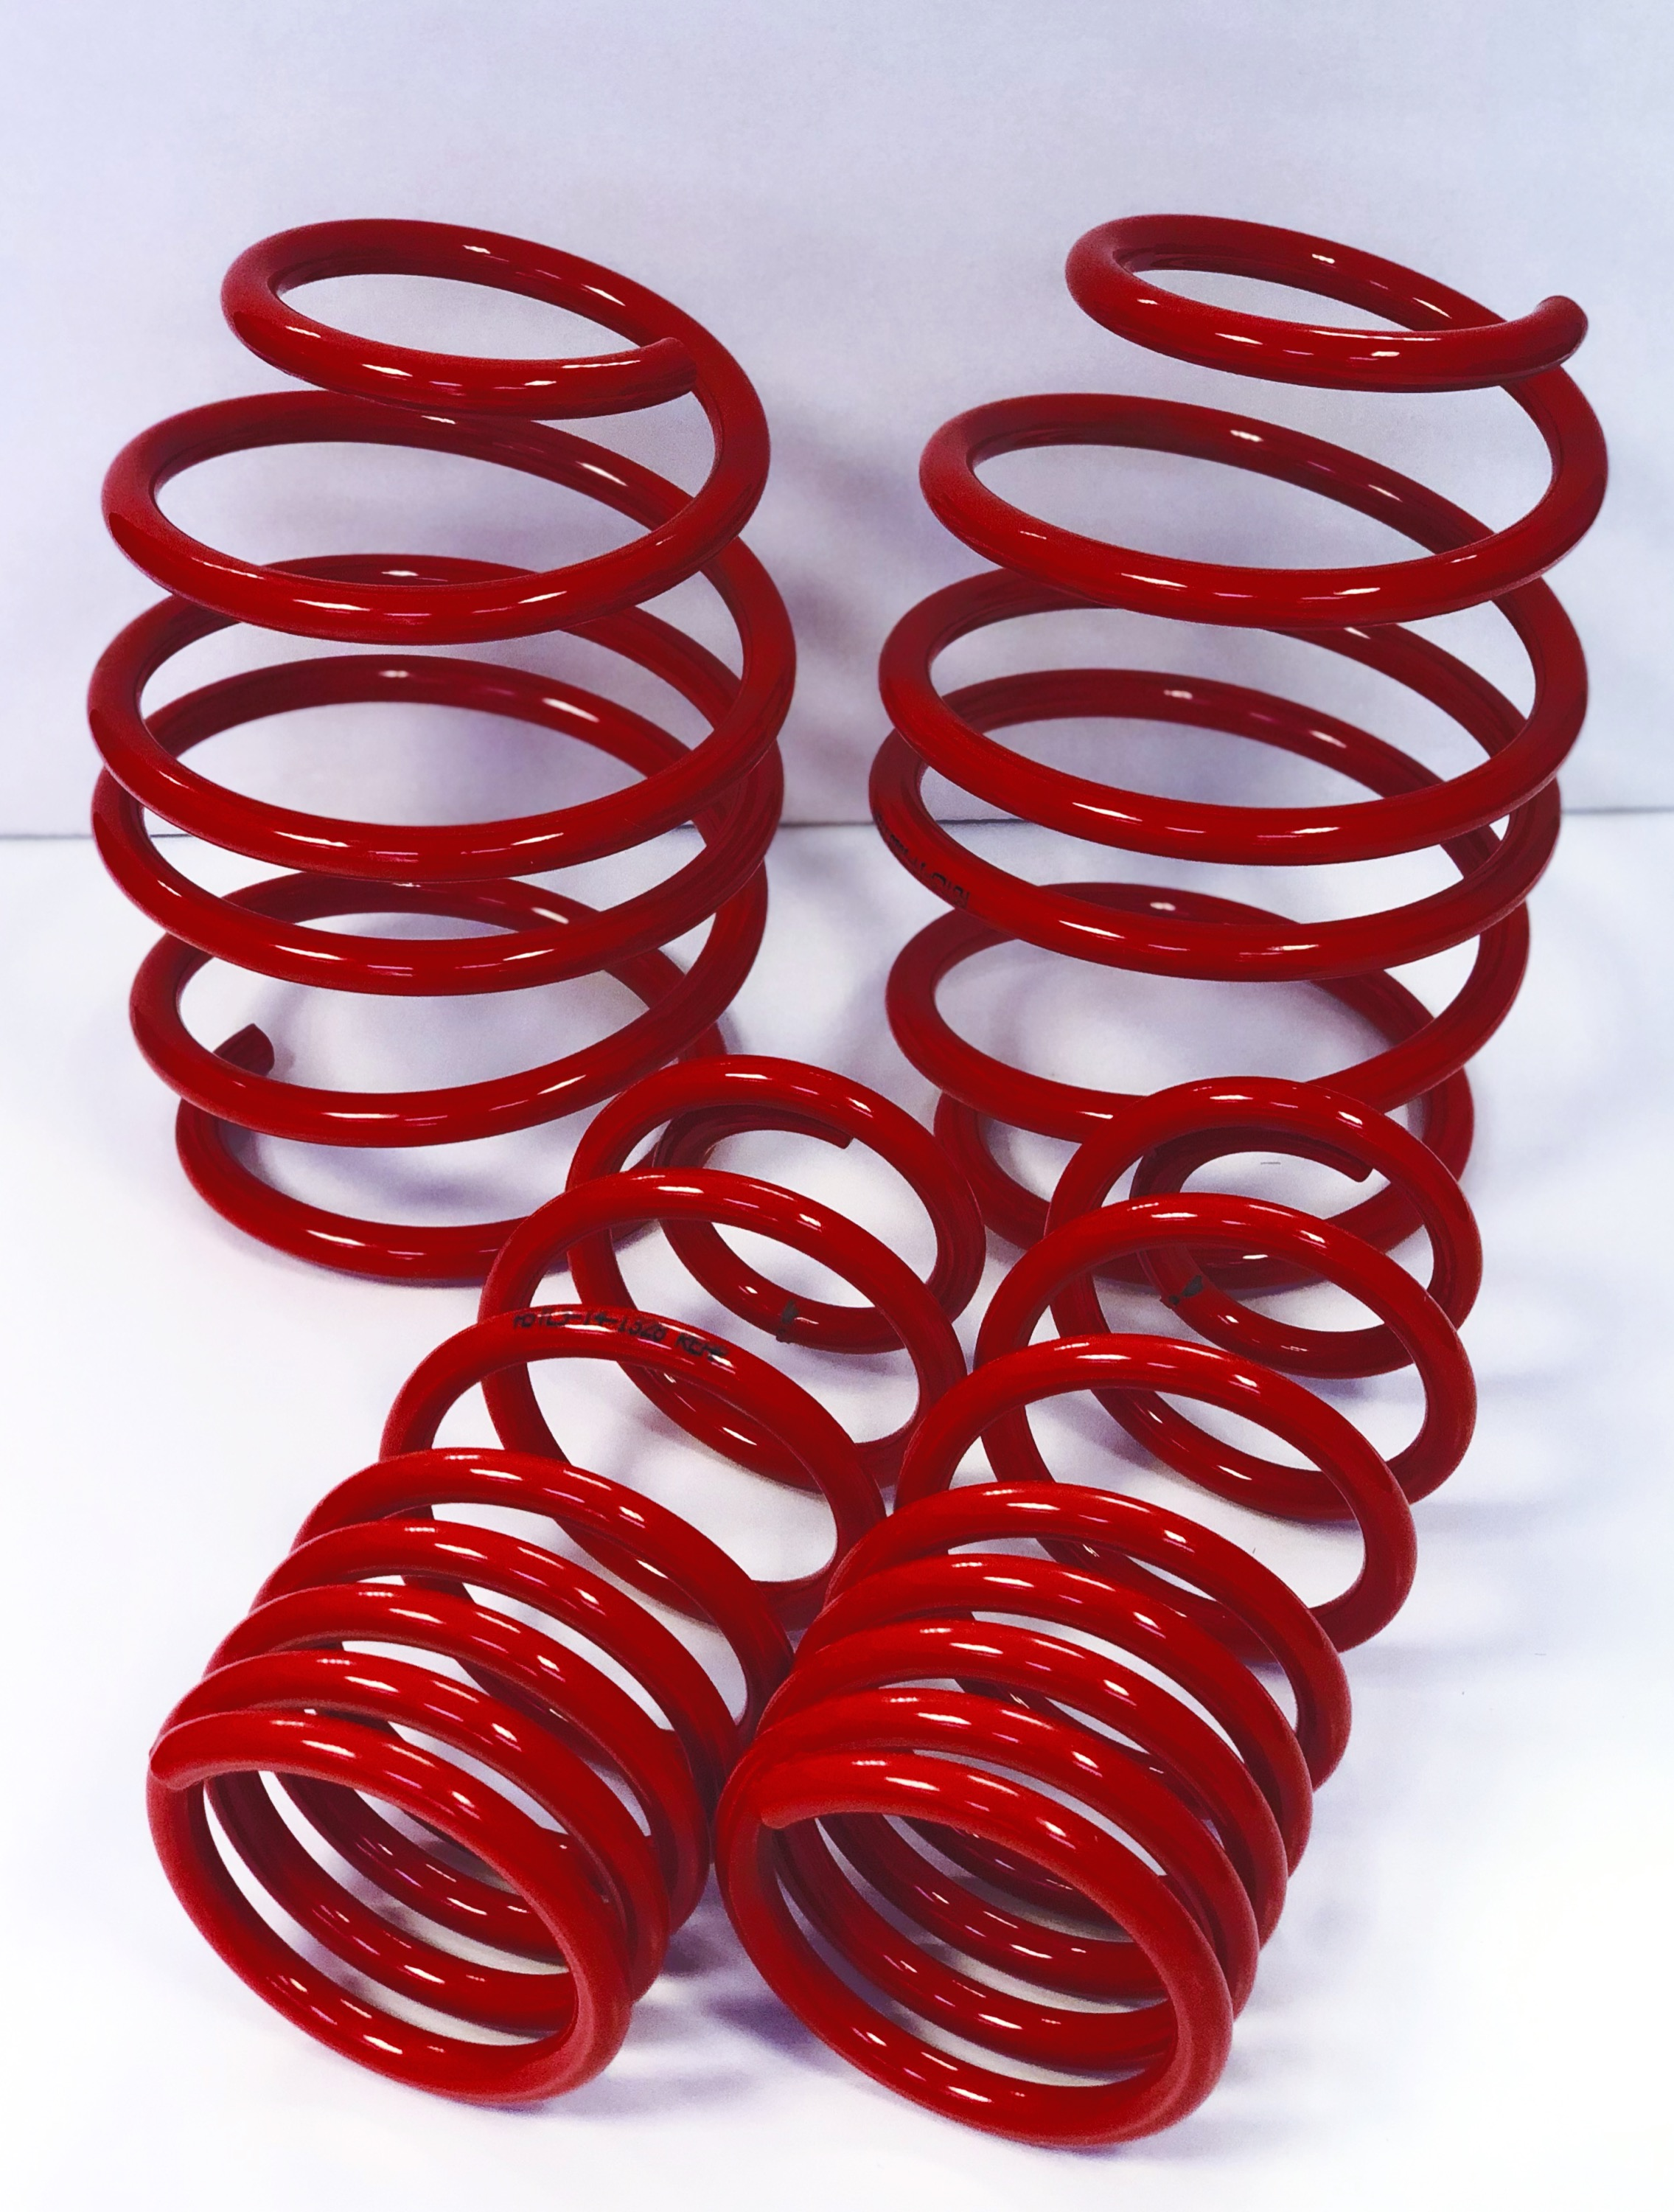 Vauxhall CORSA AST Suspension Lowering Springs 35/25